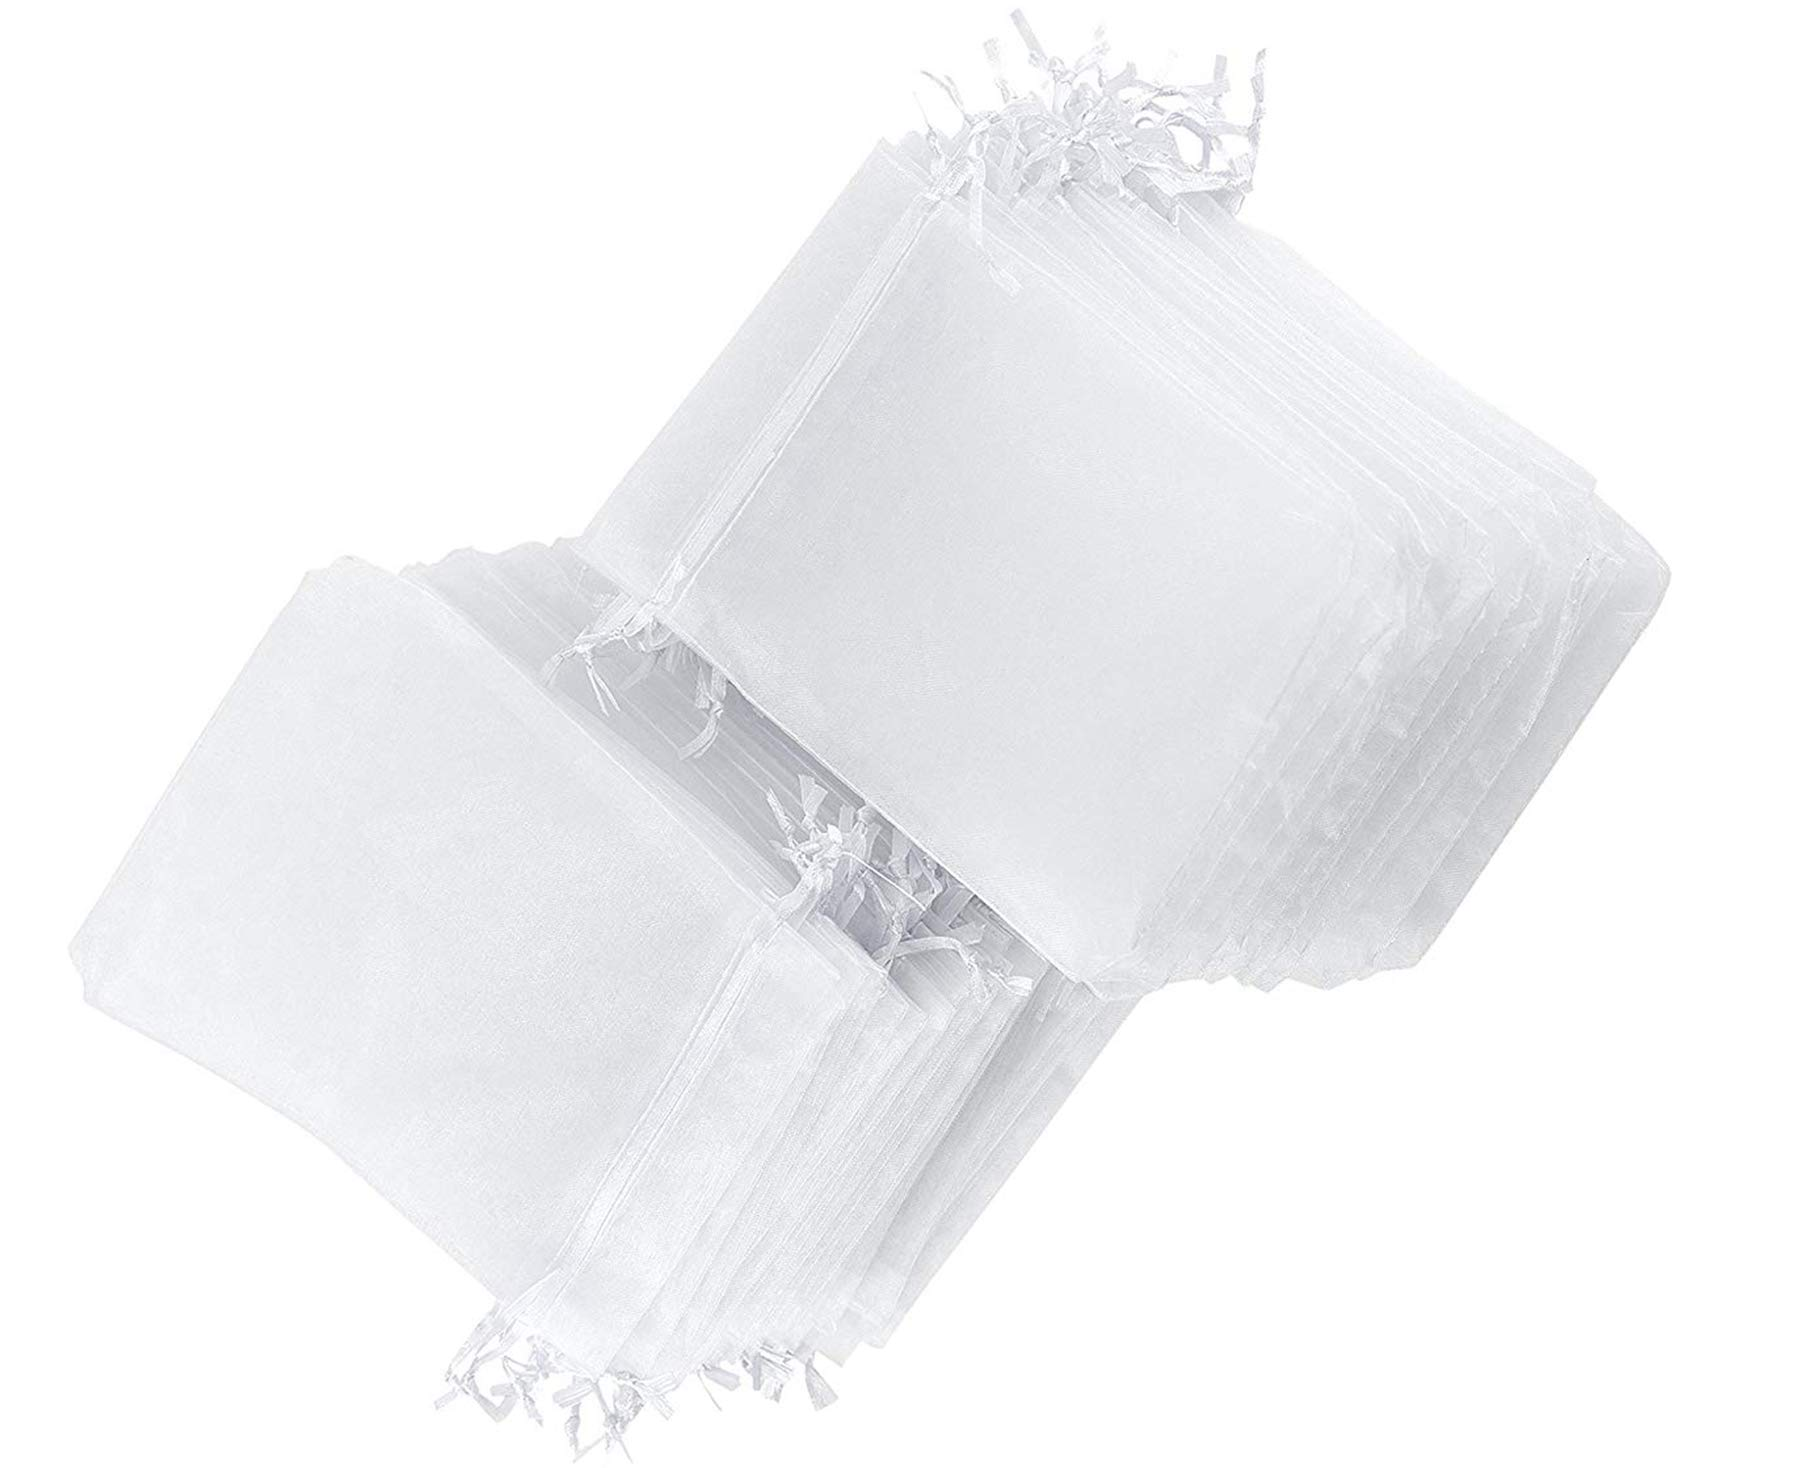 EbuyGo 100PCS 6x9 Inch(16x22cm) Drawstring Organza Jewelry Favor Pouches Wedding Party Festival Gift Bags Candy Bags (White)